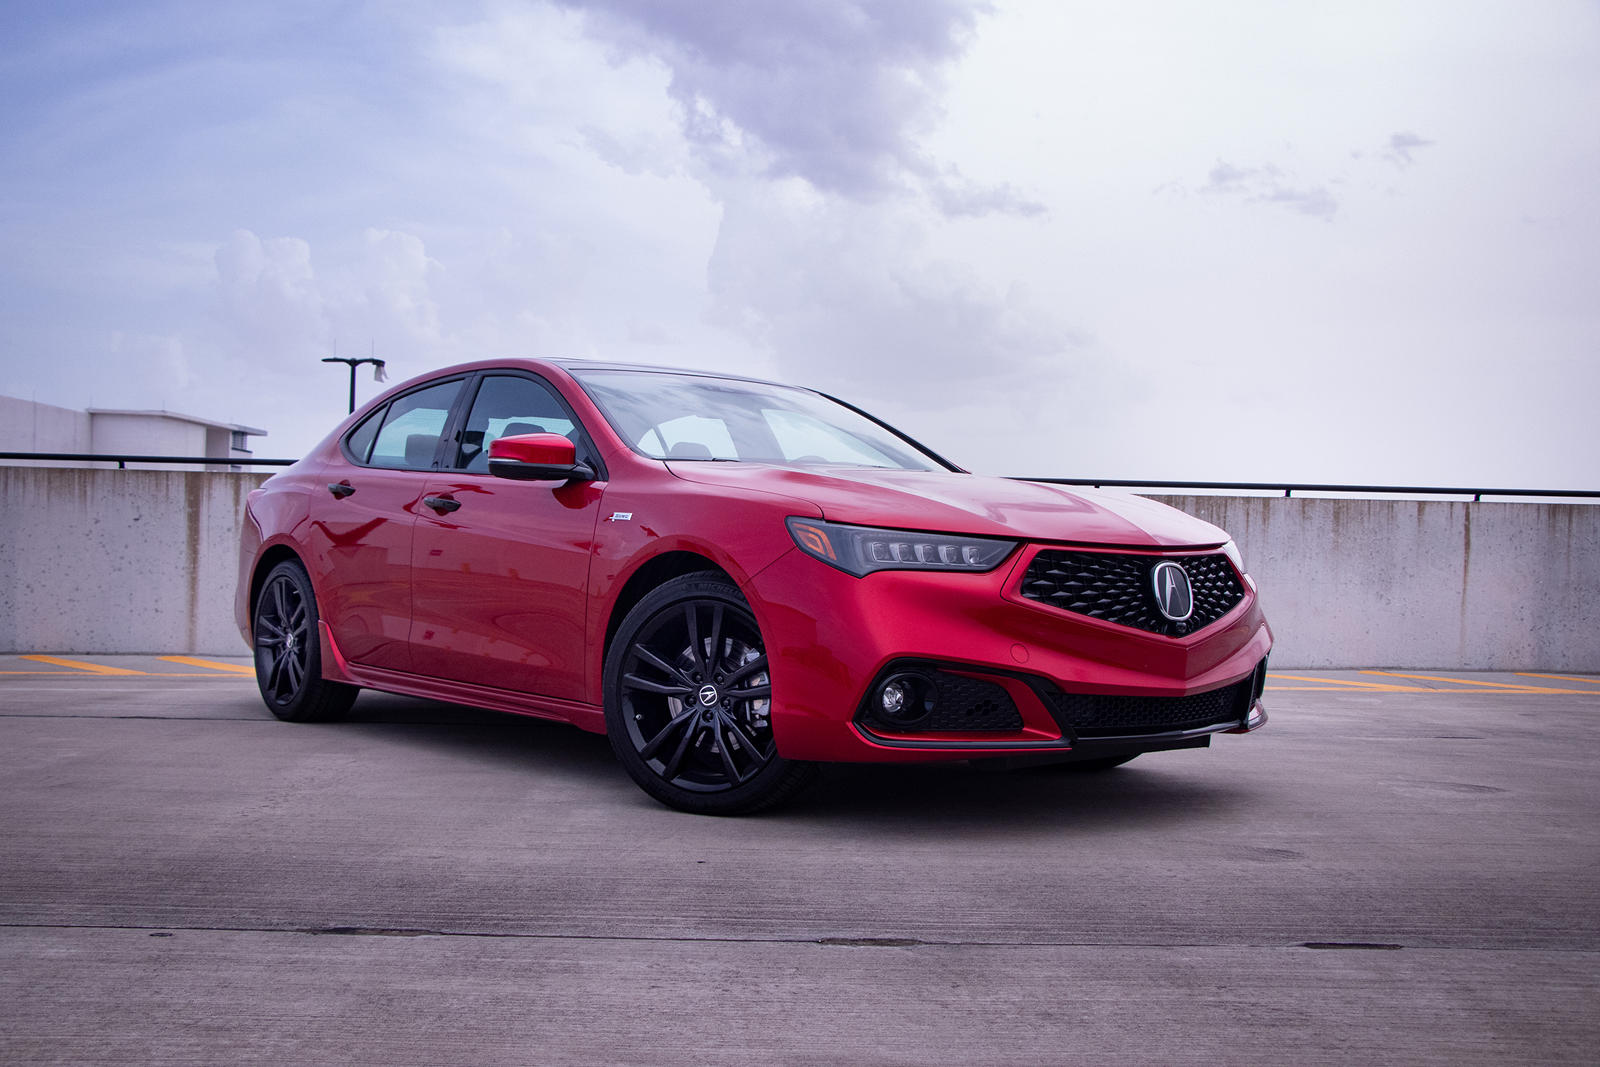 2020 Acura Tlx Review Trims Specs Price New Interior Features Exterior Design And Specifications Flipboard